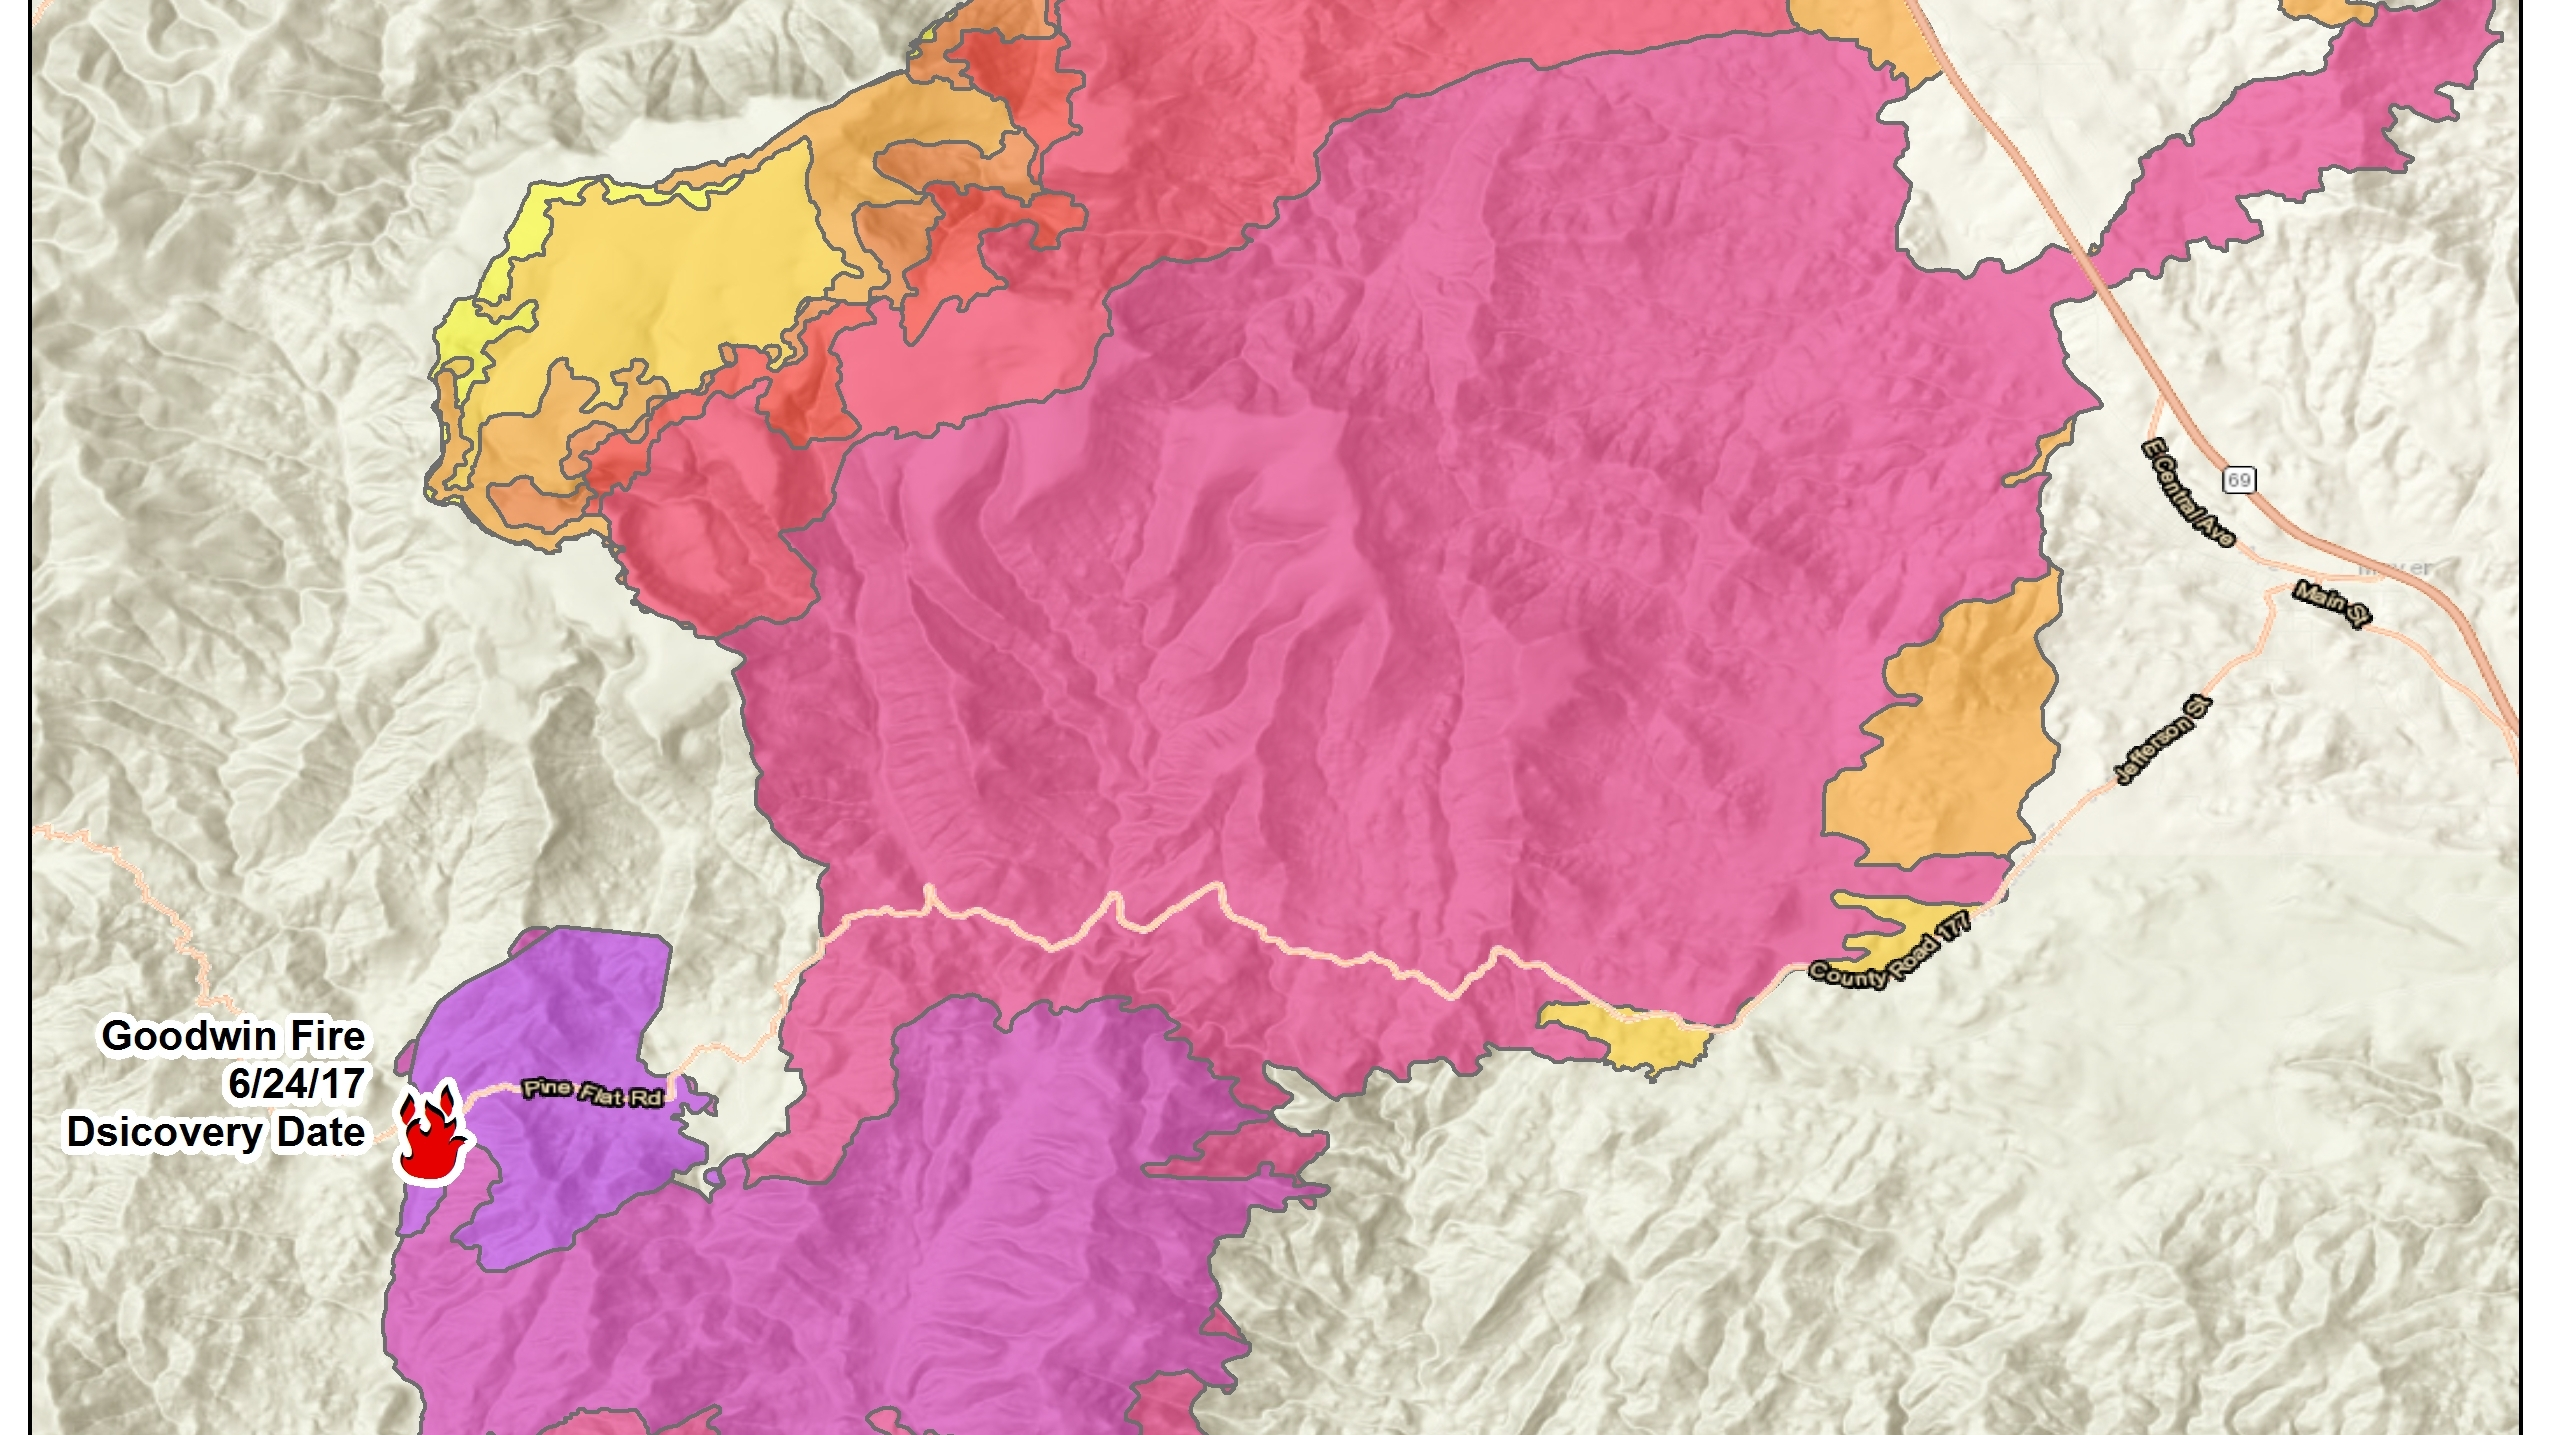 Image of Goodwin Fire progression map